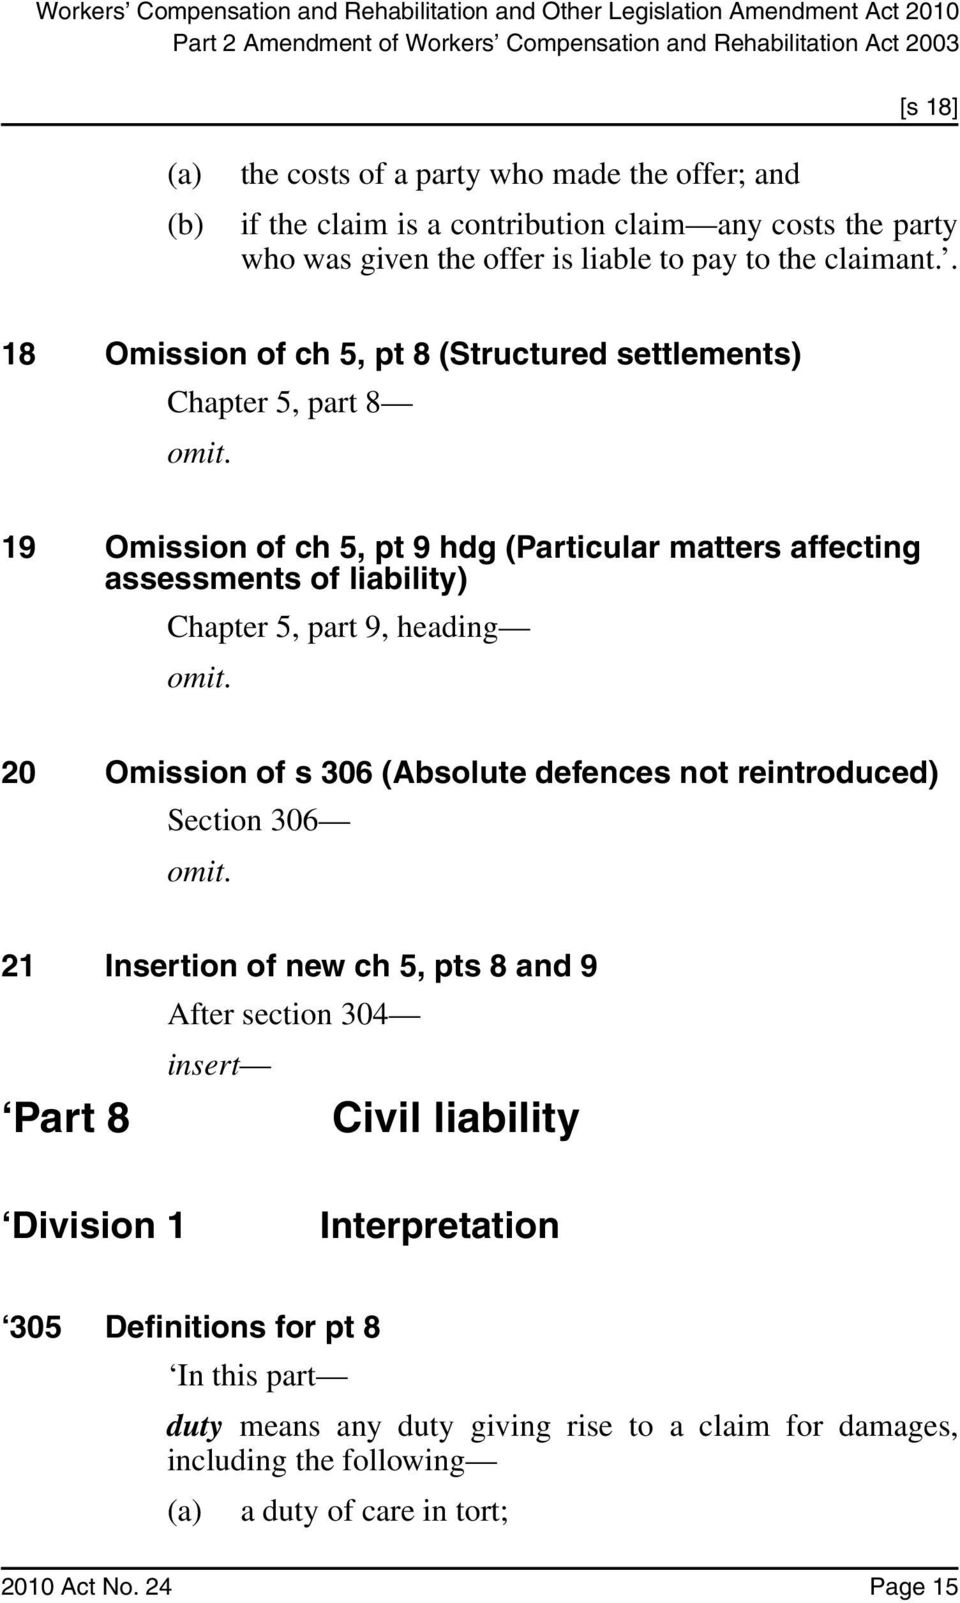 19 Omission of ch 5, pt 9 hdg (Particular matters affecting assessments of liability) Chapter 5, part 9, heading omit. 20 Omission of s 306 (Absolute defences not reintroduced) Section 306 omit.